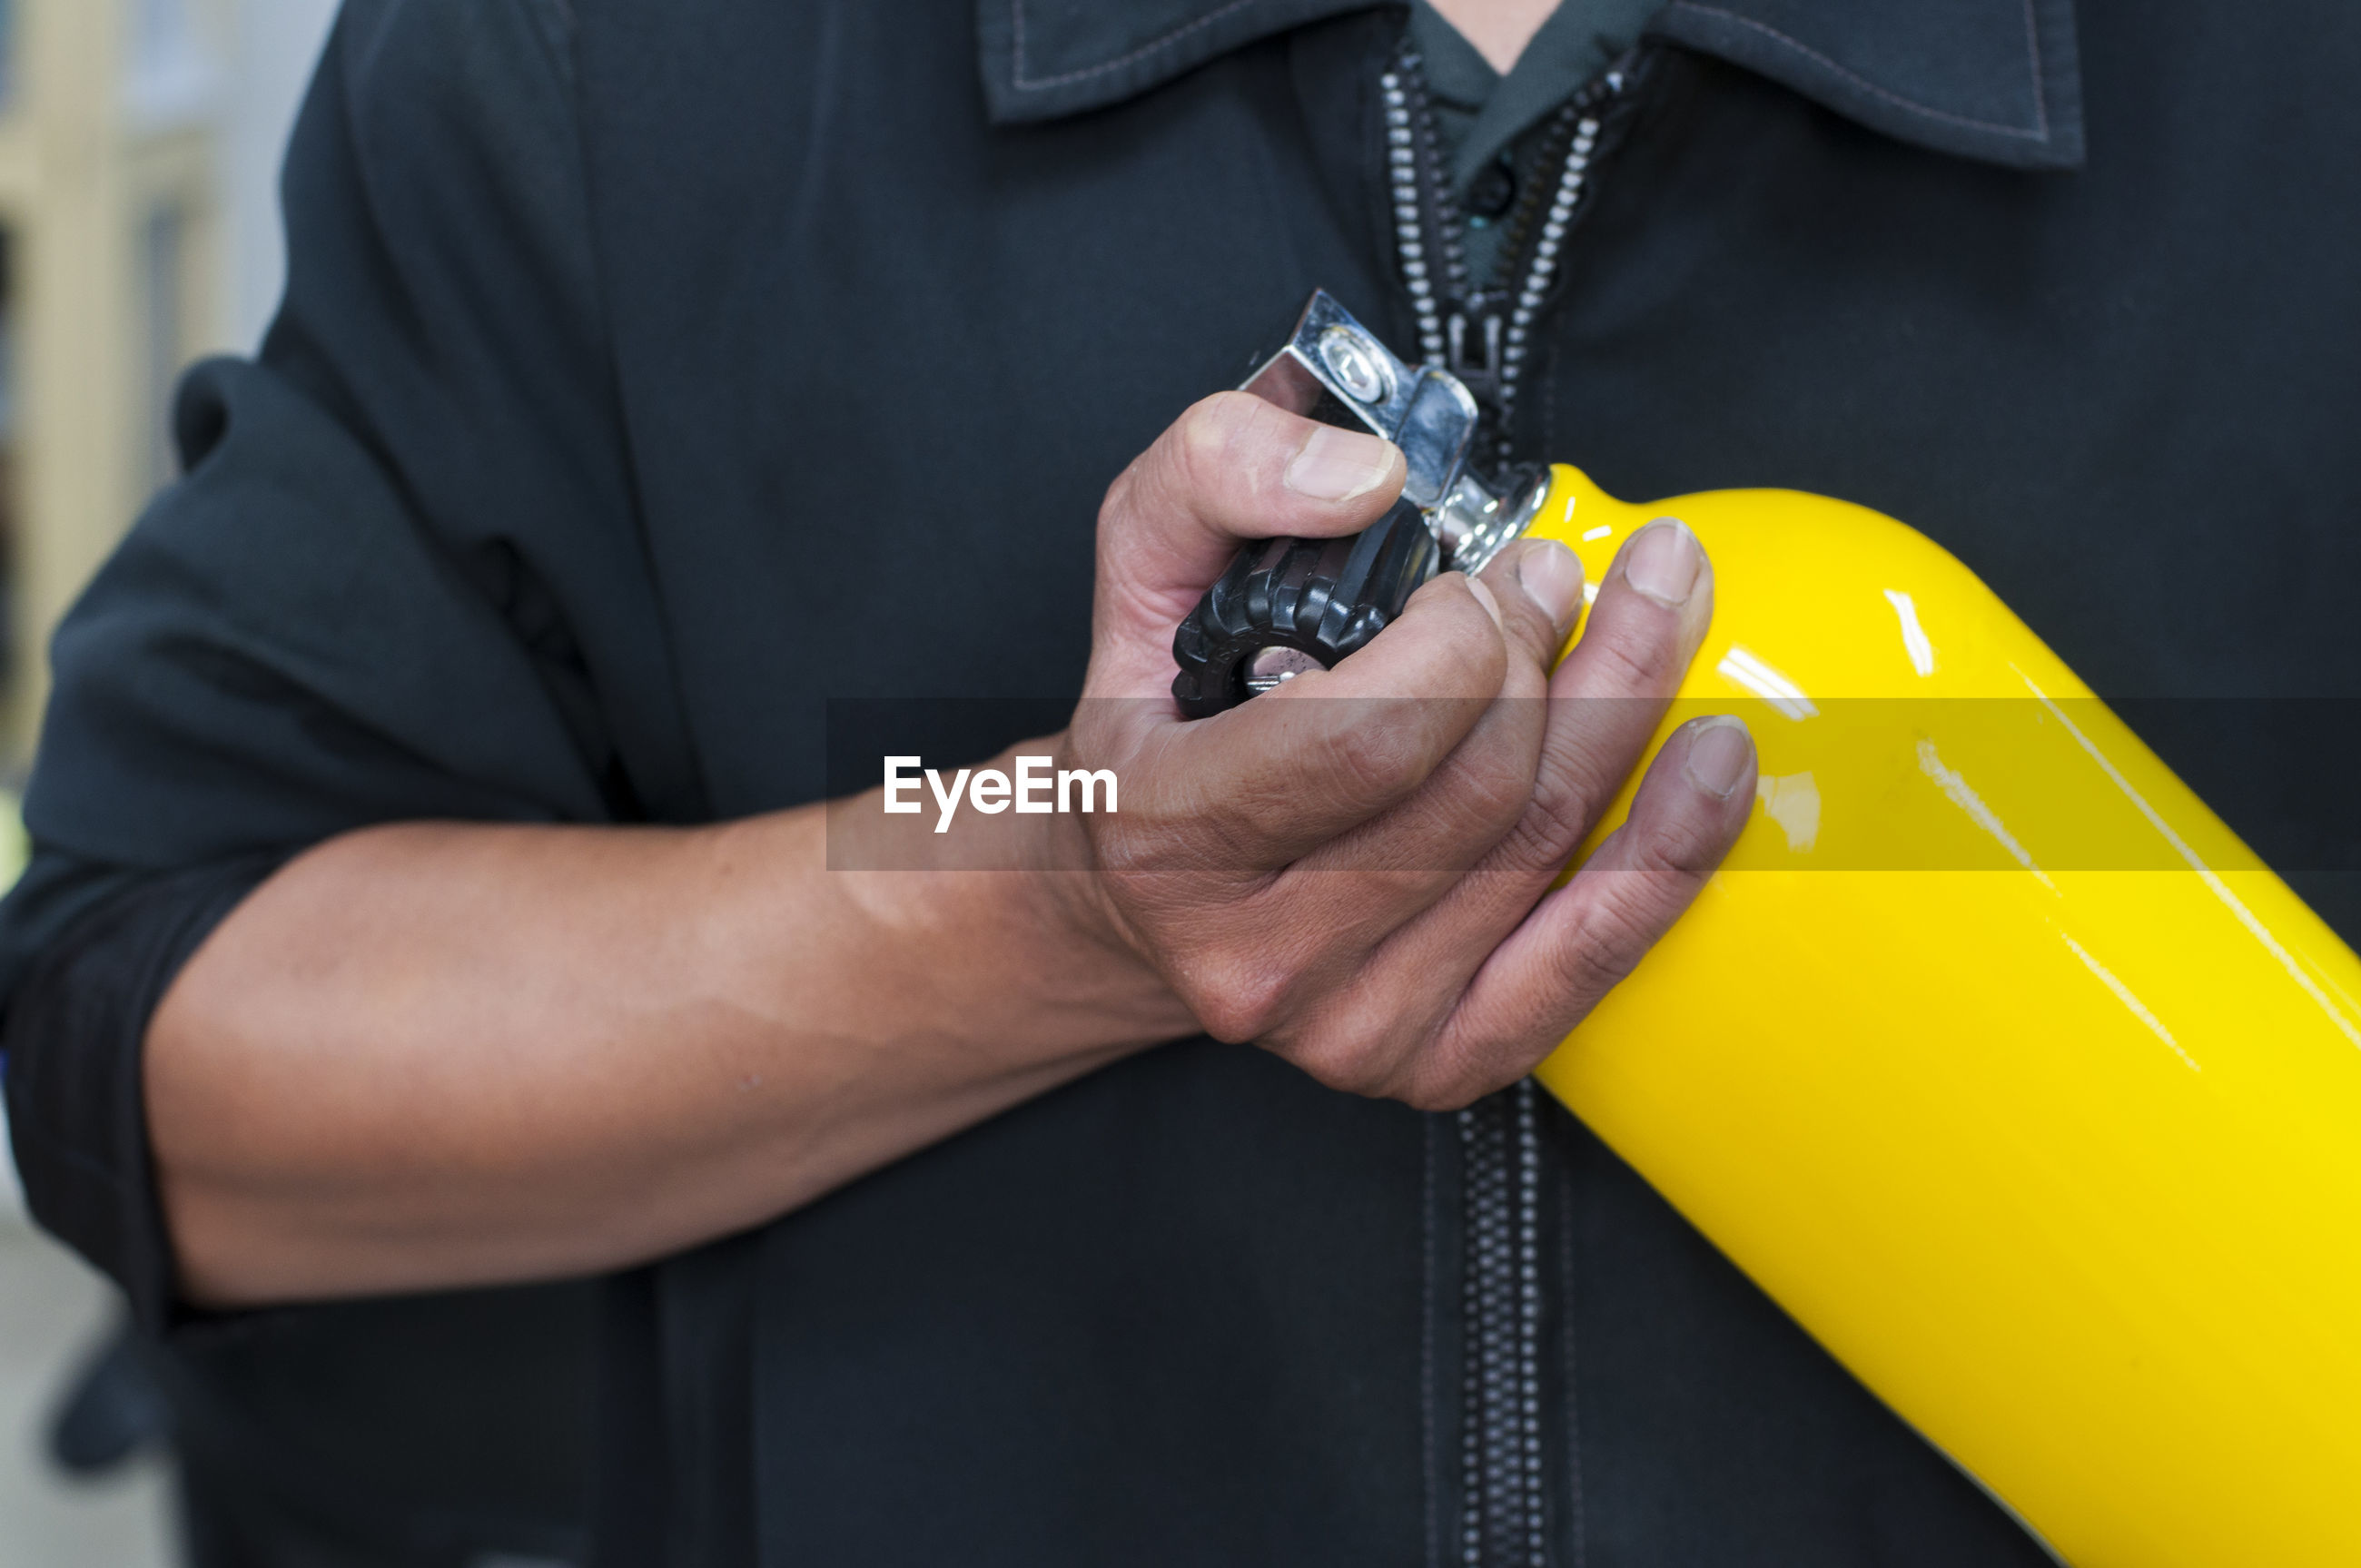 Close-up midsection of man holding diving equipment